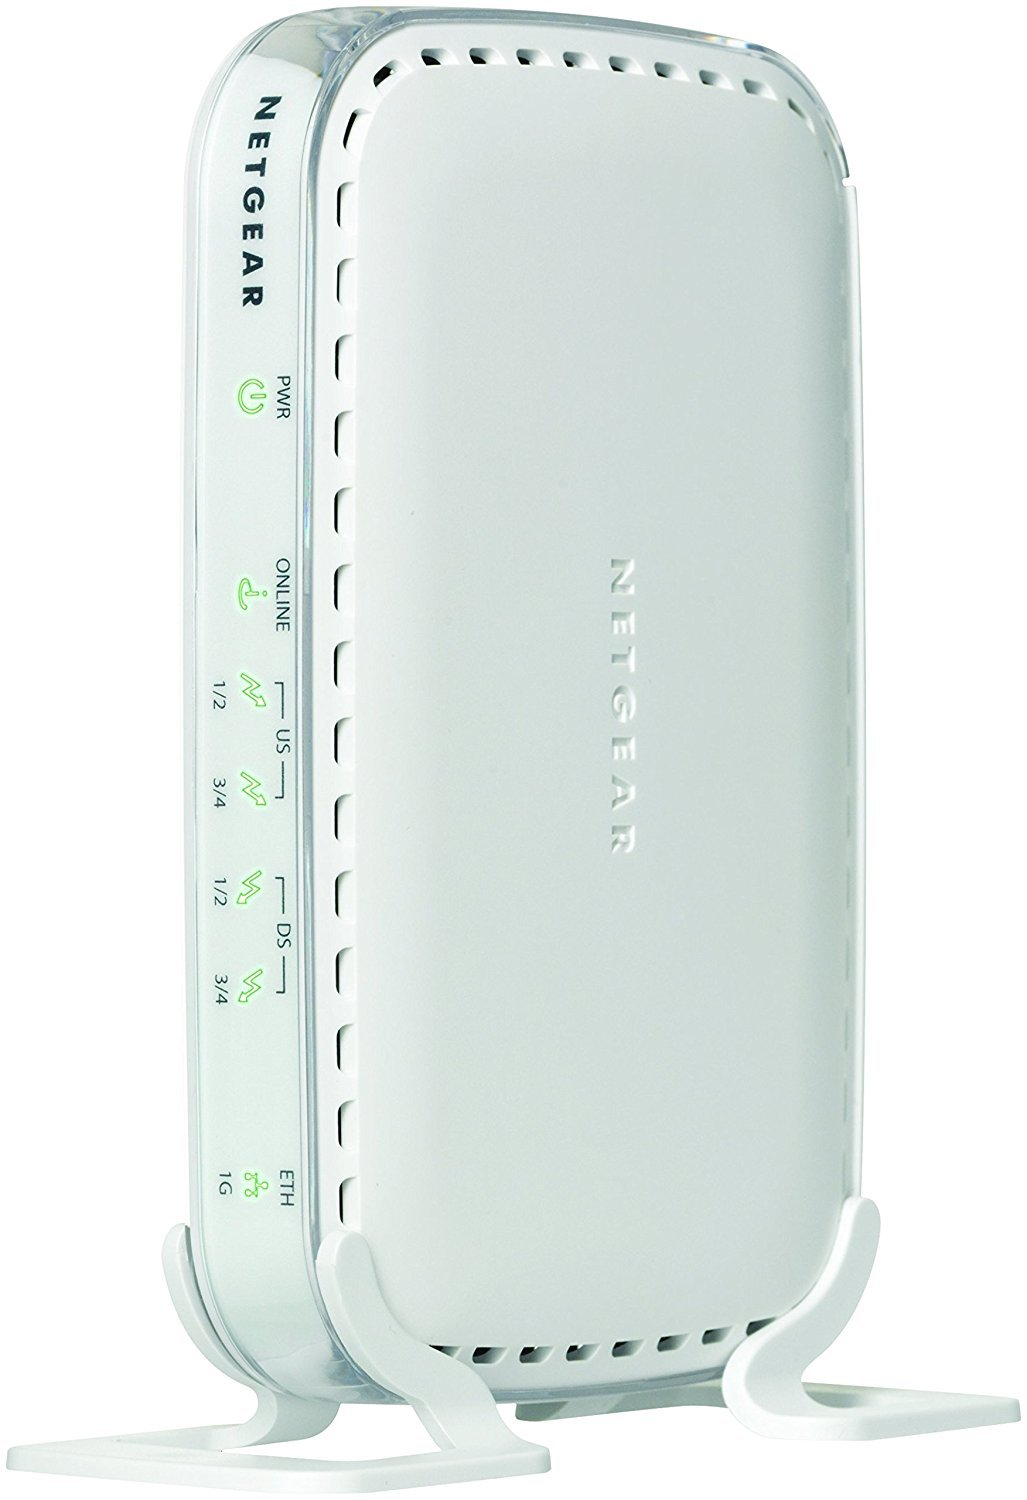 NETGEAR CMD31T (4x4) Cable Modem (CMD31T) Certified Refurbished